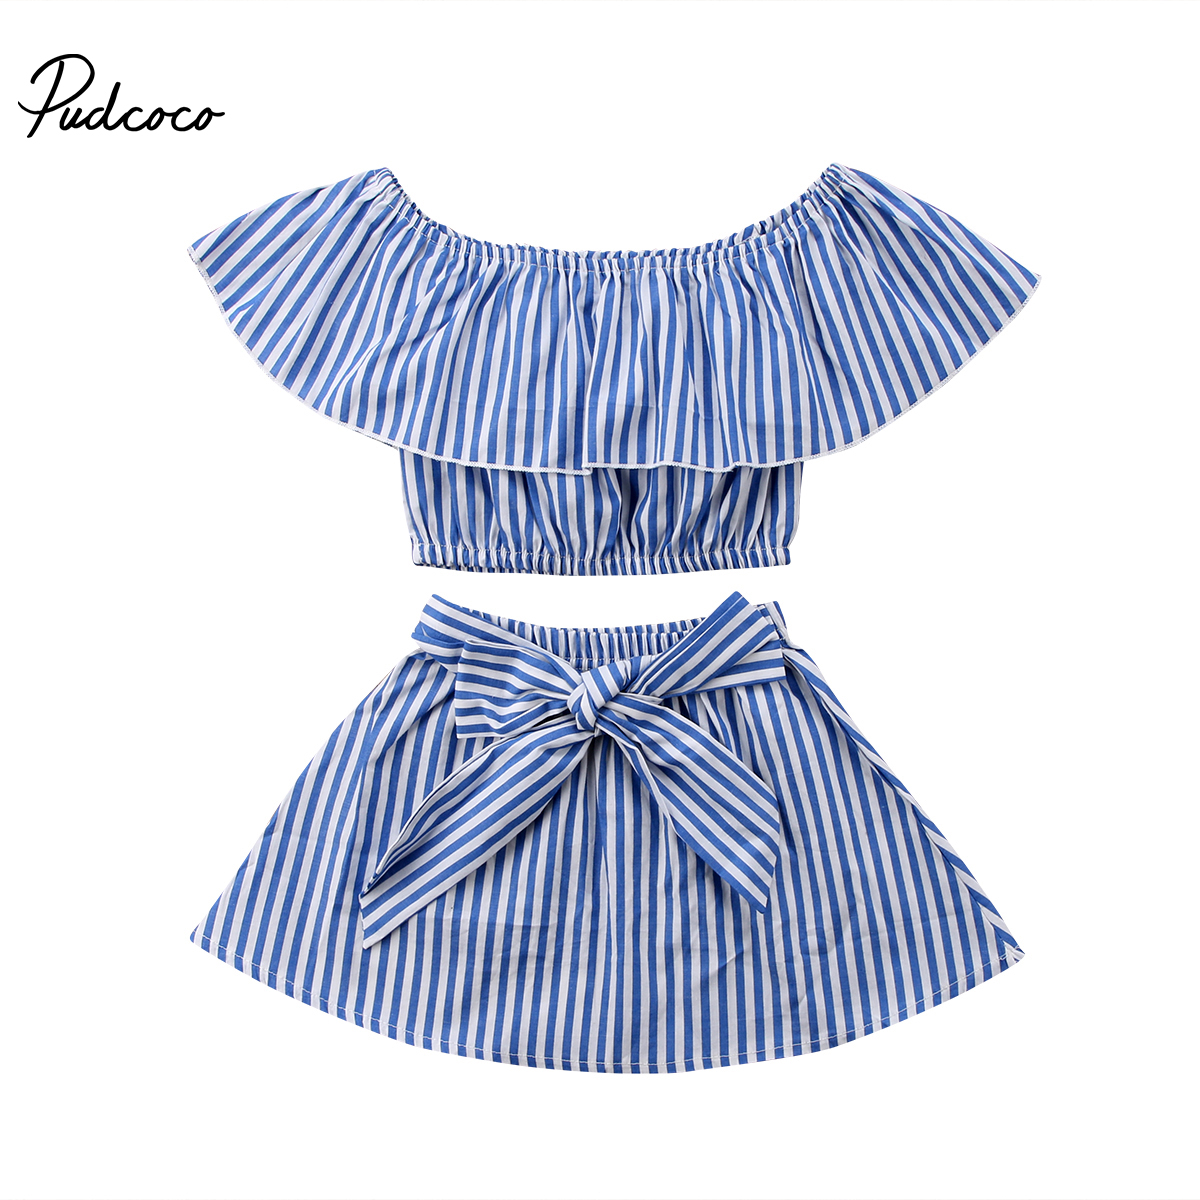 Kids Toddler Girl Summer Clothing Set Ruffle Off-Shoulder T-shirt Top+Bow Skirt Tutu Dress Stripe Baby Clothes Outfit clothing set kids baby girl short sleeve t shirt tutu floral skirt set summer outfits